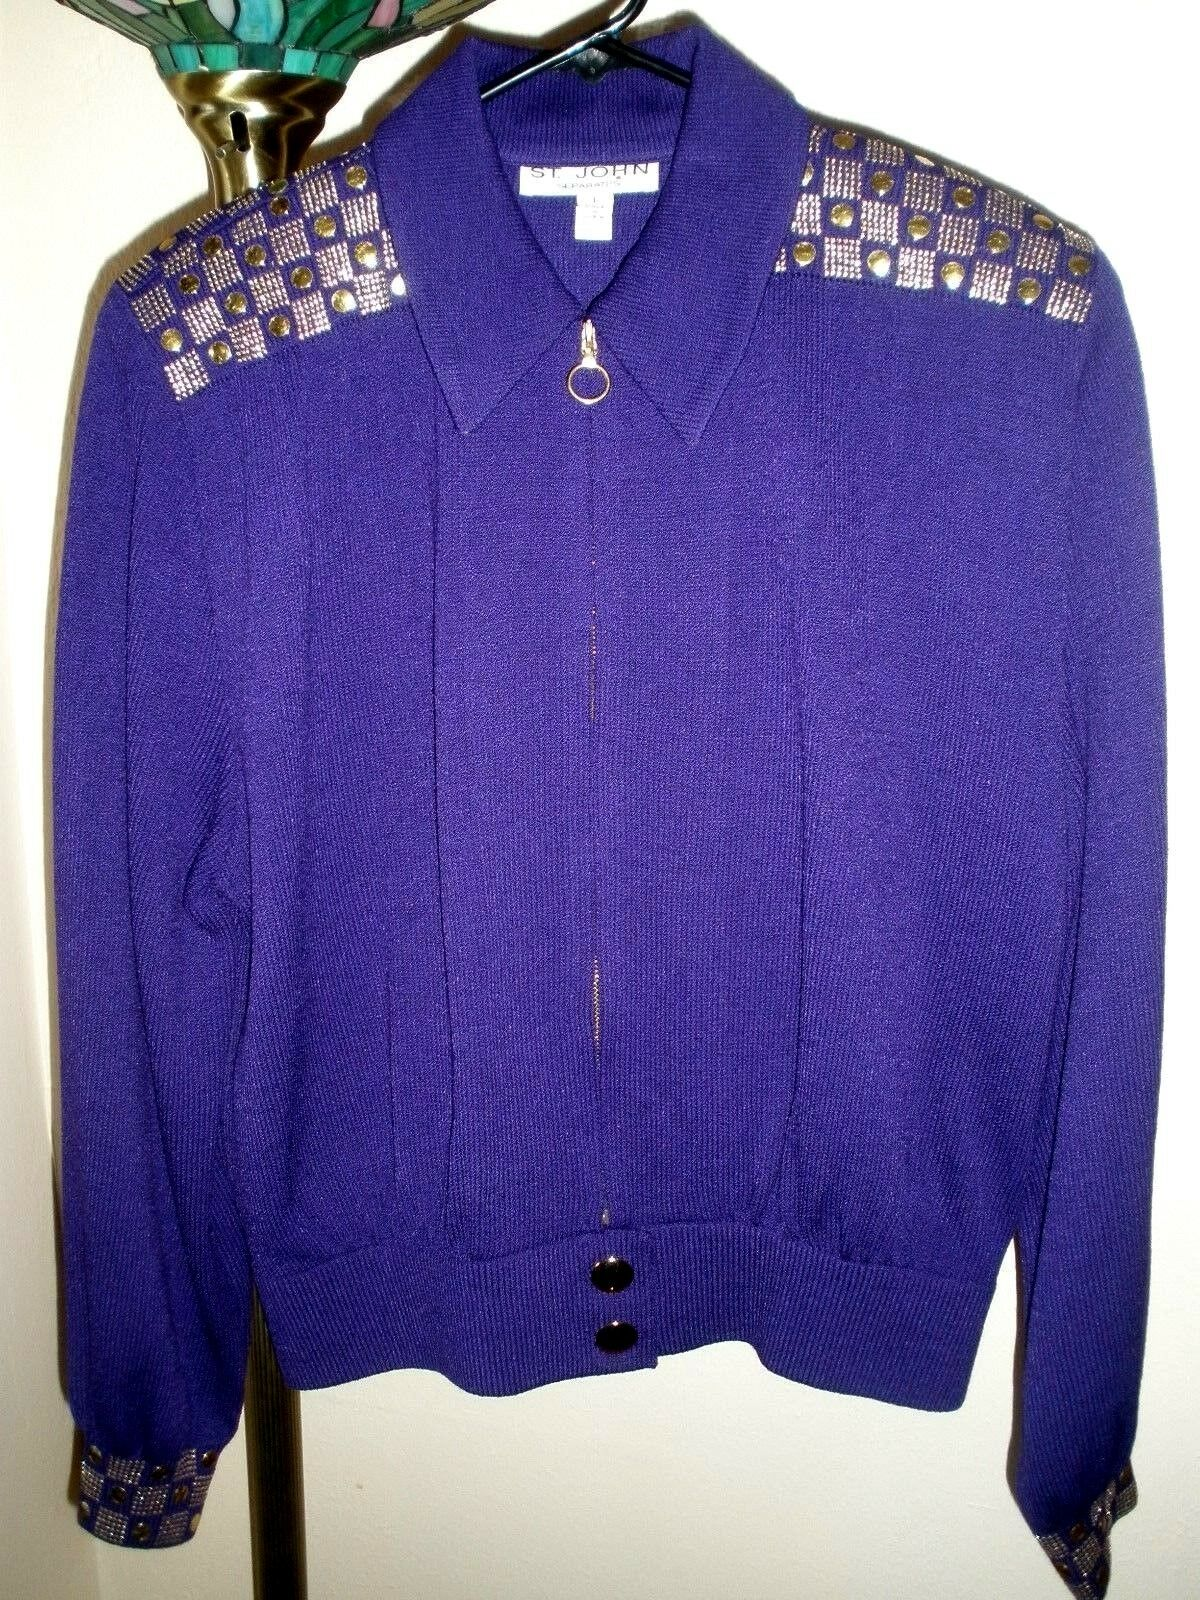 ST. JOHN SEPARATES DARK PURPLE gold ACCENTED FULL ZIP SWEATER SZ LARGE PERFECT